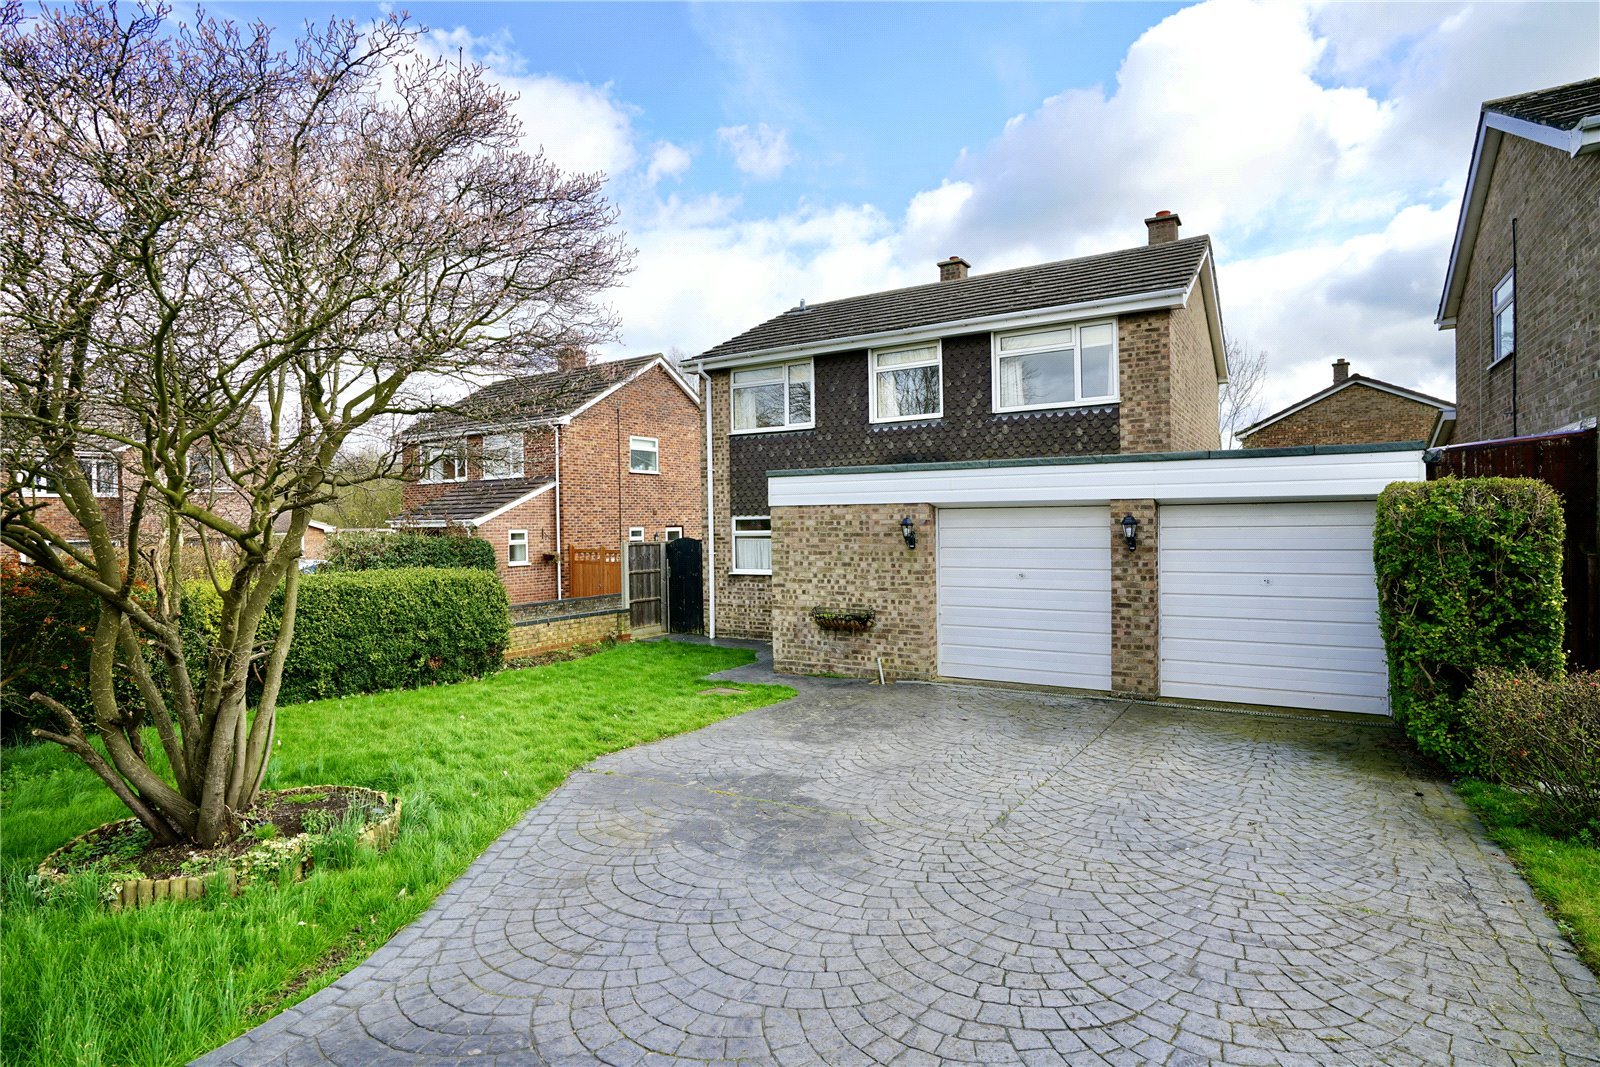 4 bed house for sale in Manor Close, Great Staughton  - Property Image 1